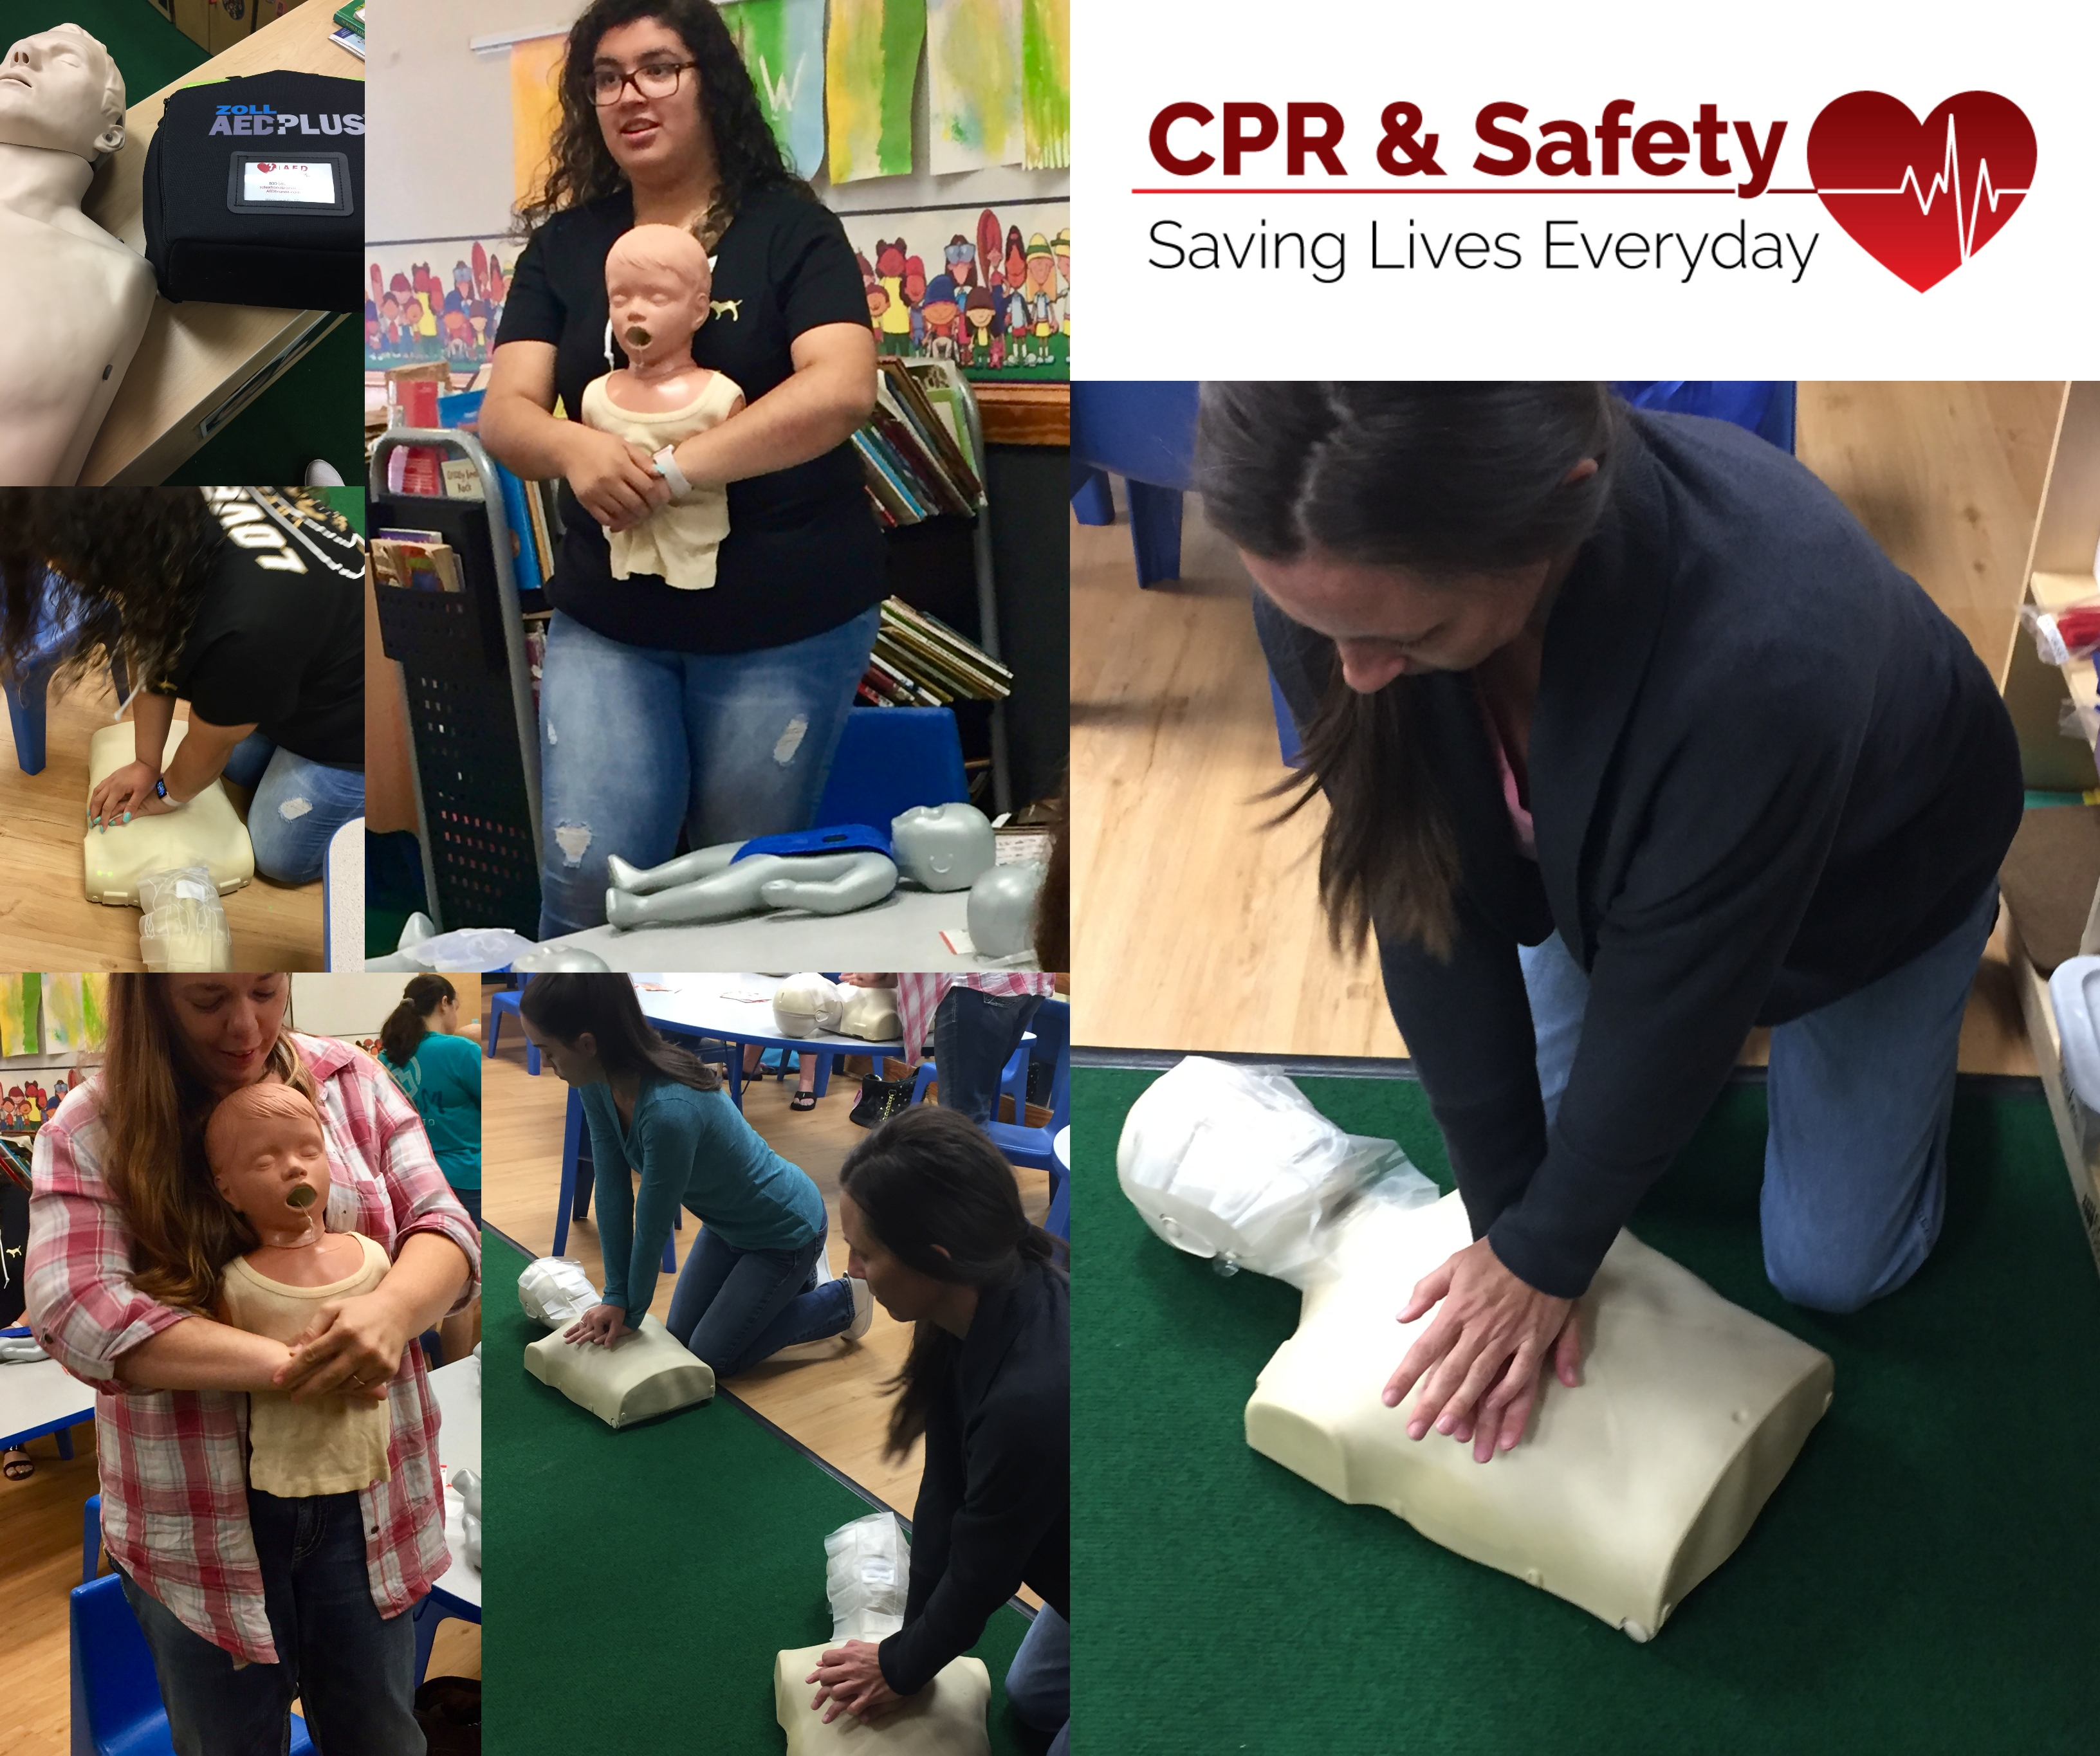 CPR and Safety image 1